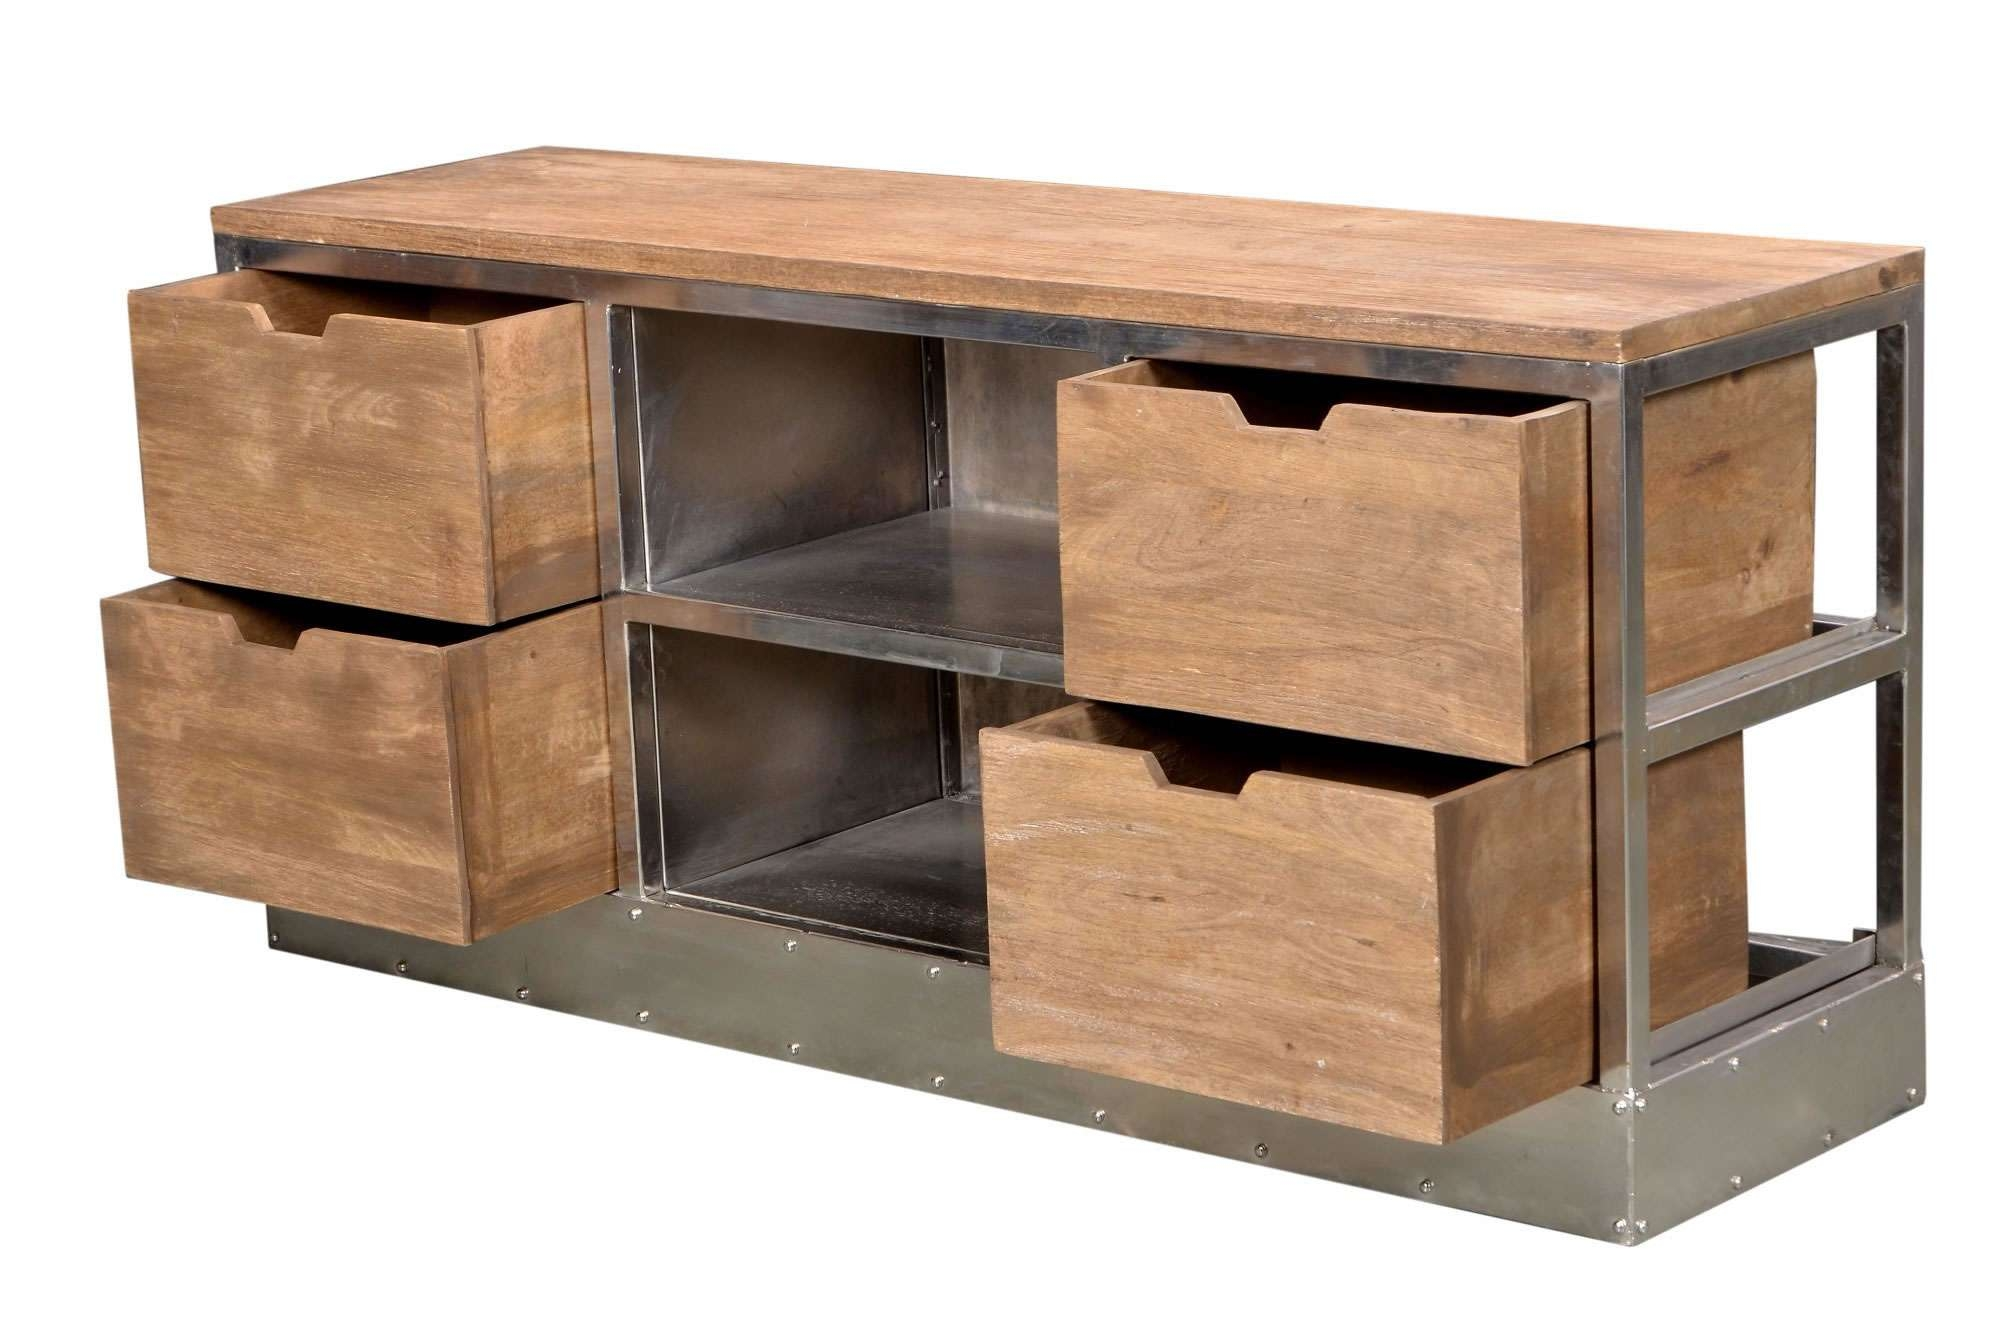 Cdi Furniture Industrial Tv Cabinet With 4 Drawers – Disc Cdi Inside Industrial Tv Cabinets (View 18 of 20)